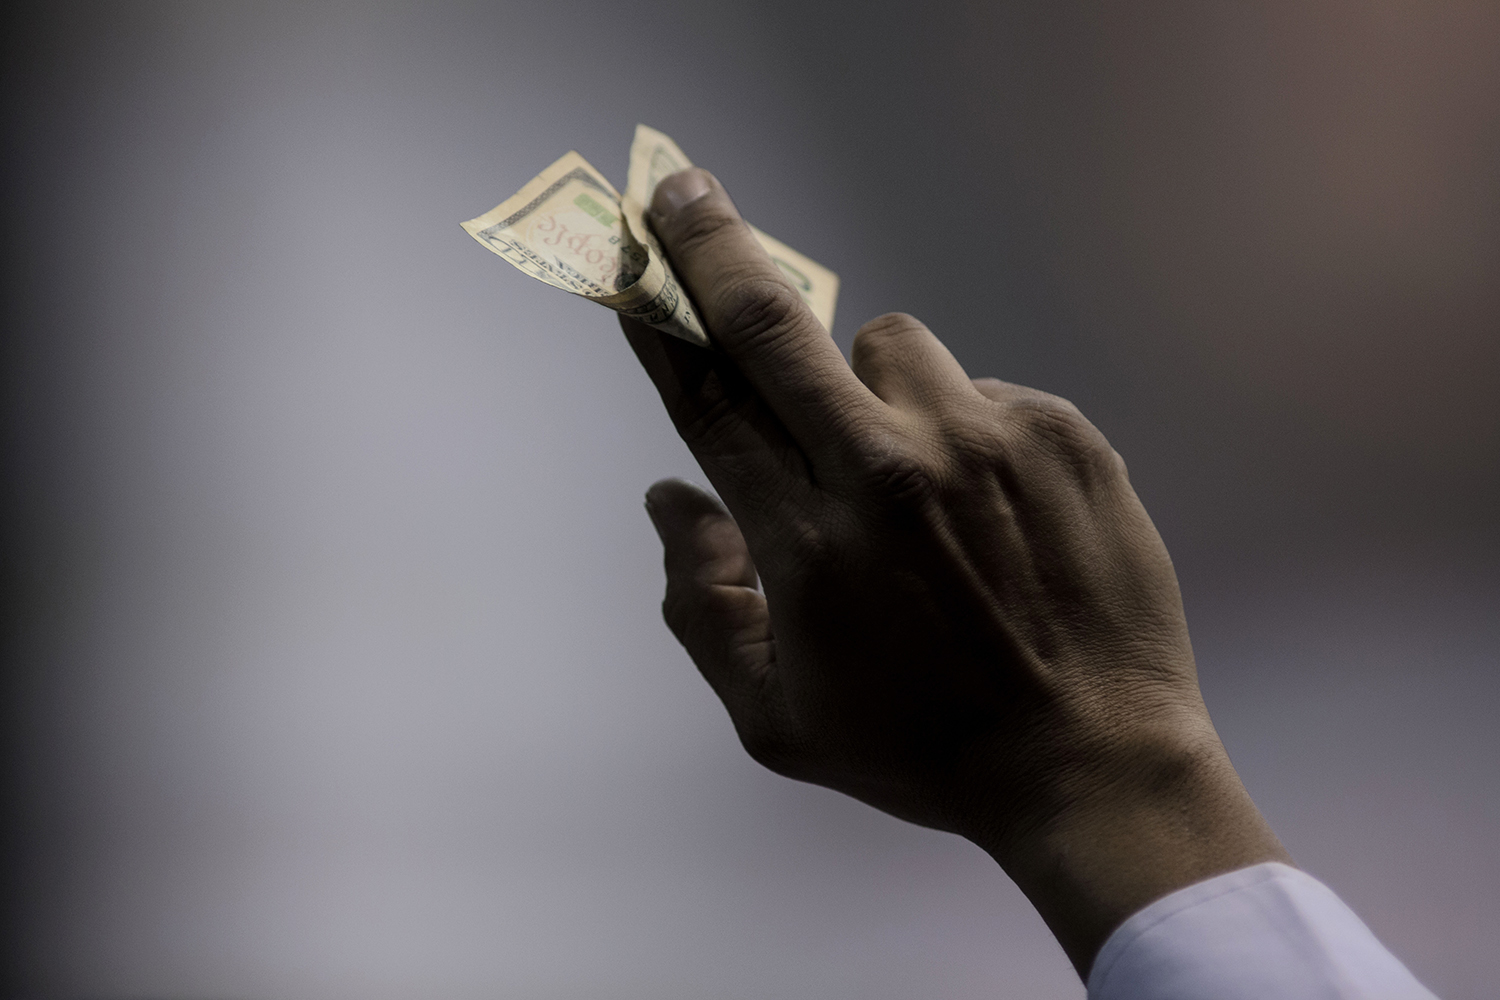 An audience member holds money in the air to be collected for donation during the Nation of Islam Saviour's Day Convention on Sunday, Feb. 21, 2016 at Joe Louis Arena in Detroit. Tim Galloway/Special for DFP